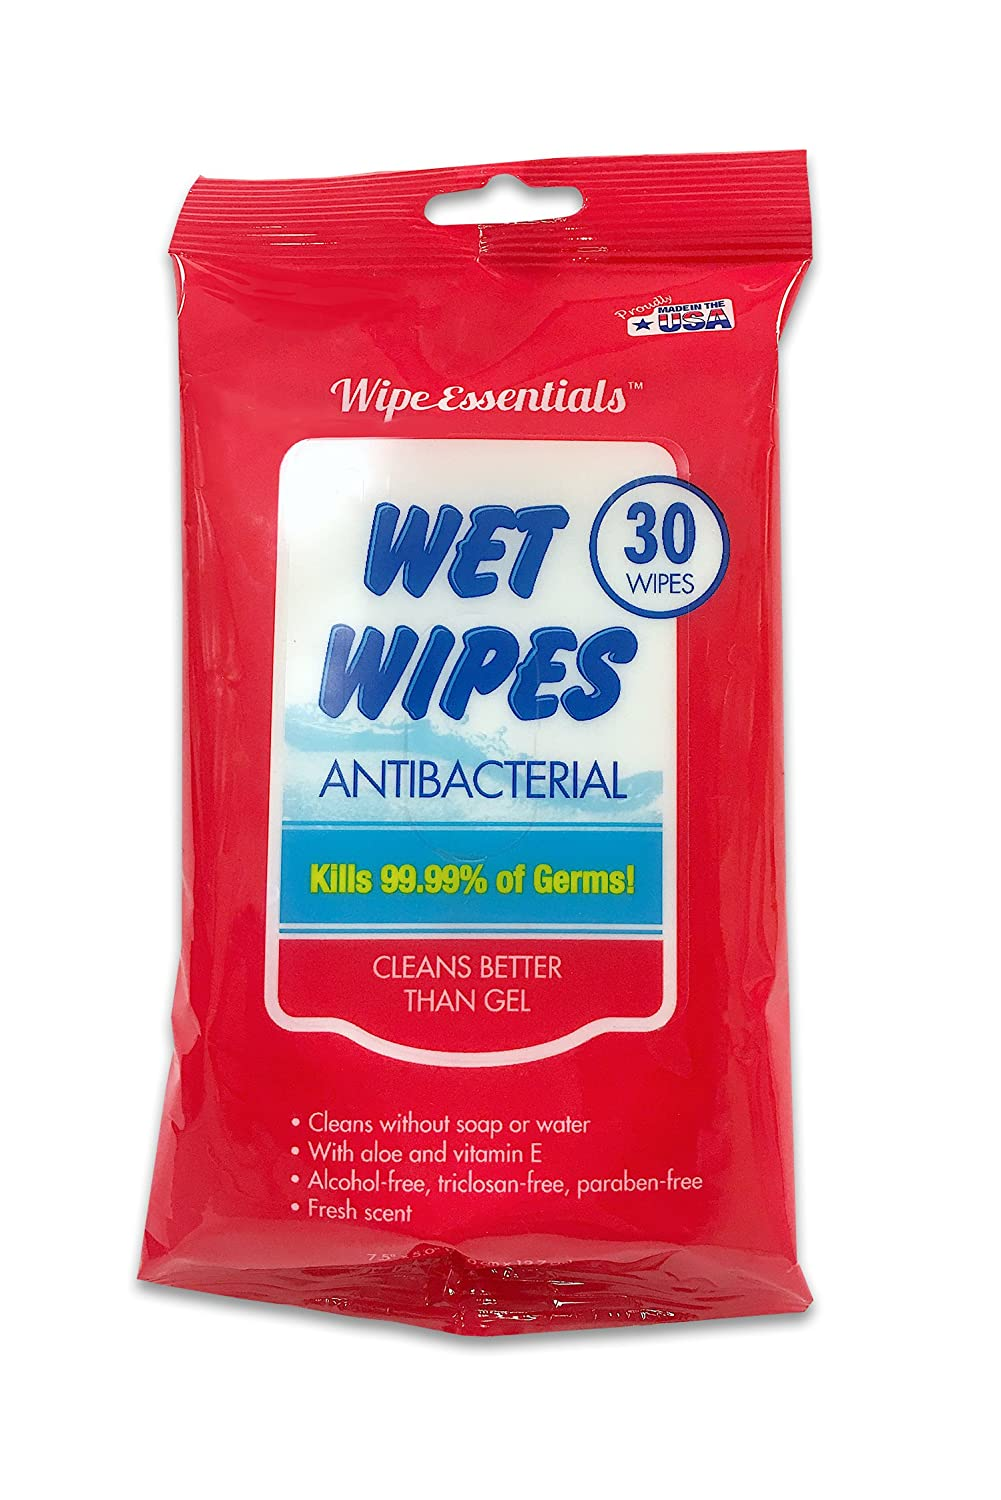 Wipessentials antibacterial wet hand wipes